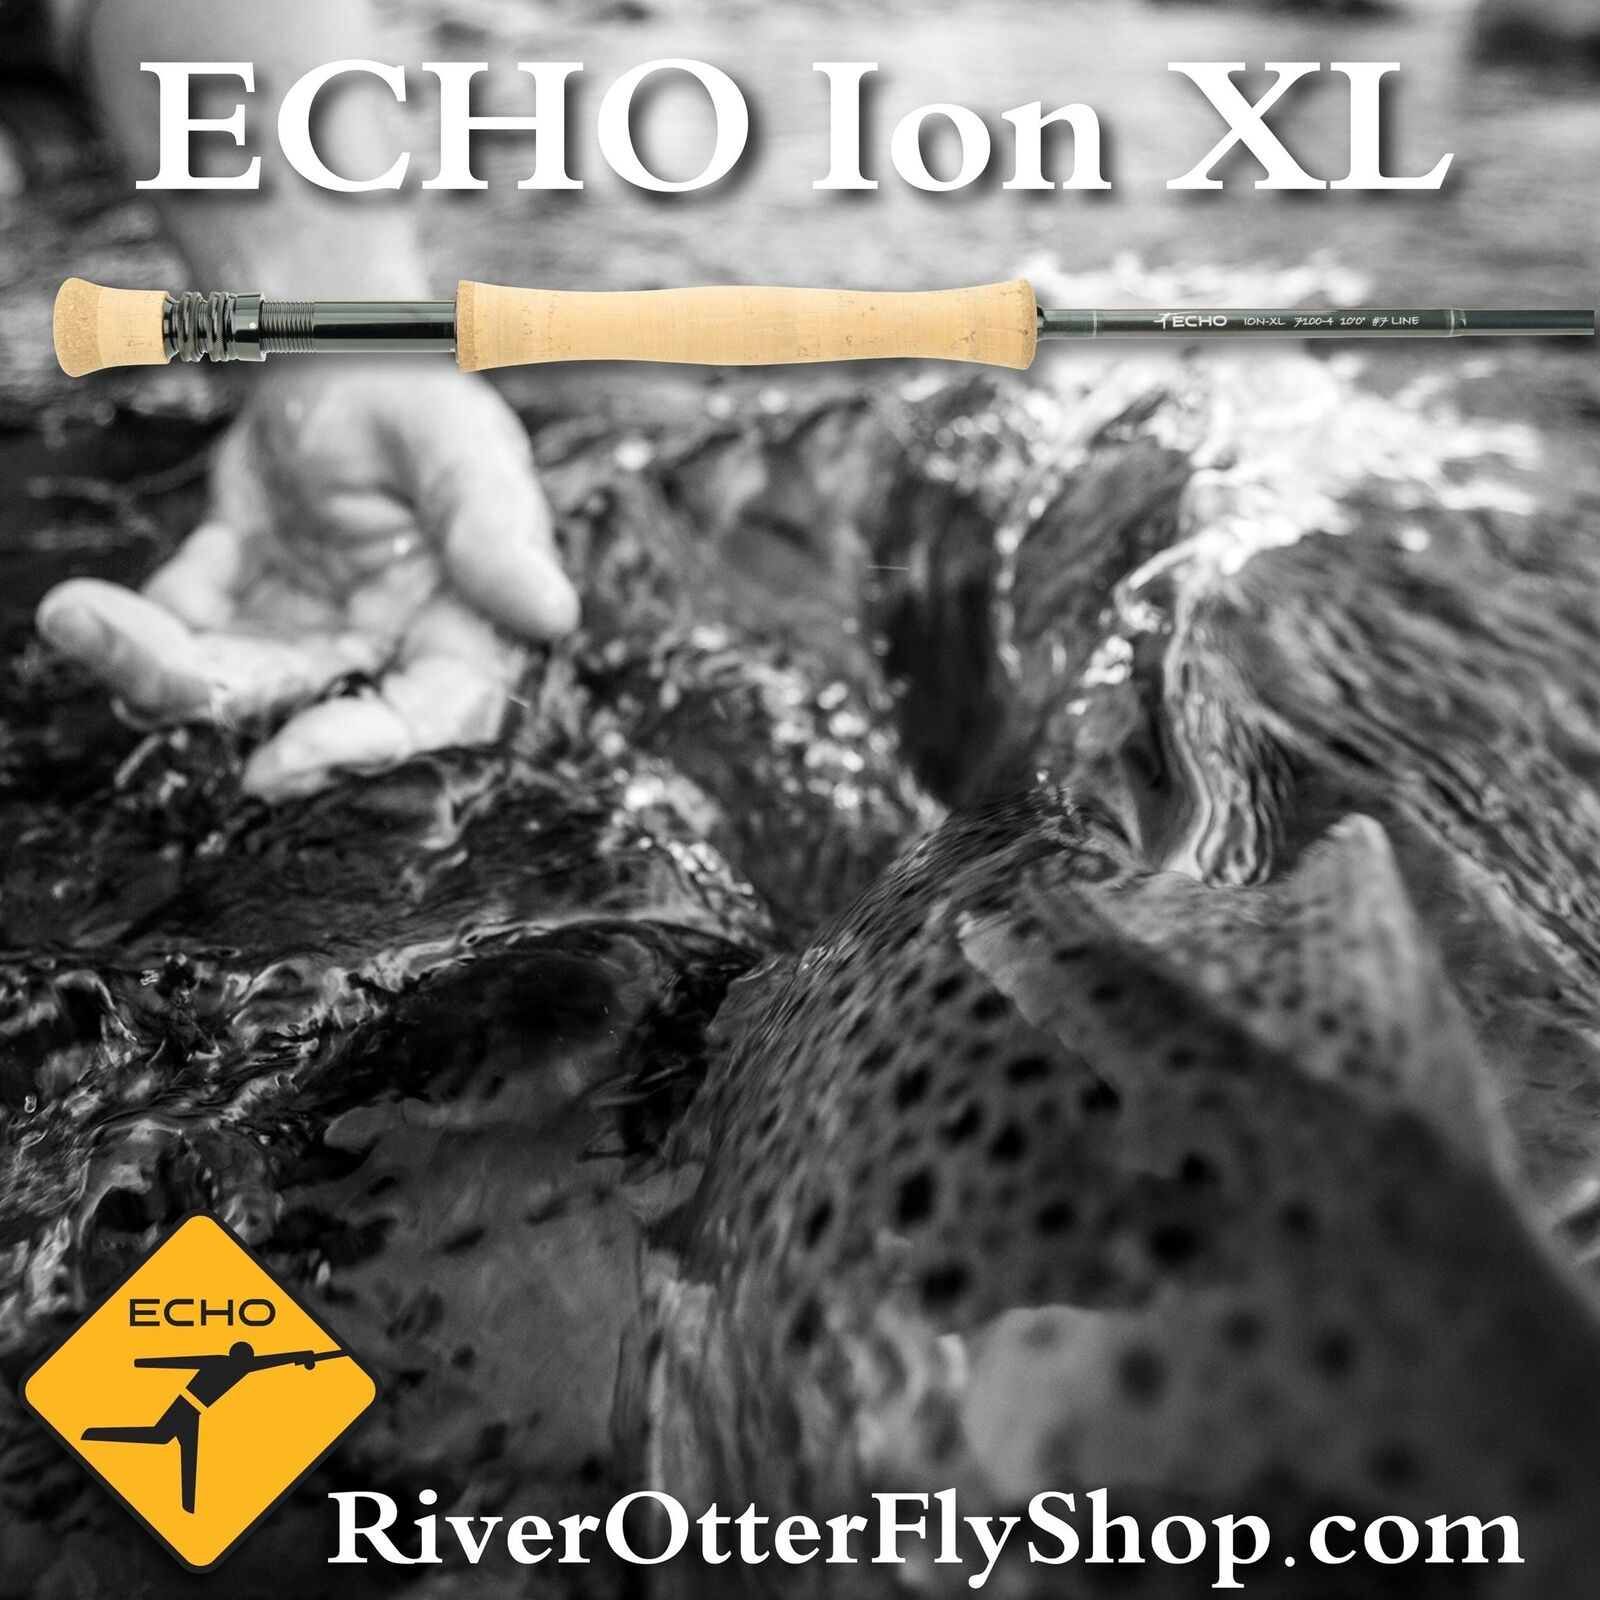 Echo Ion XL 5wt 10'0  Fly Rod - Lifetime Warranty - Free Shipping